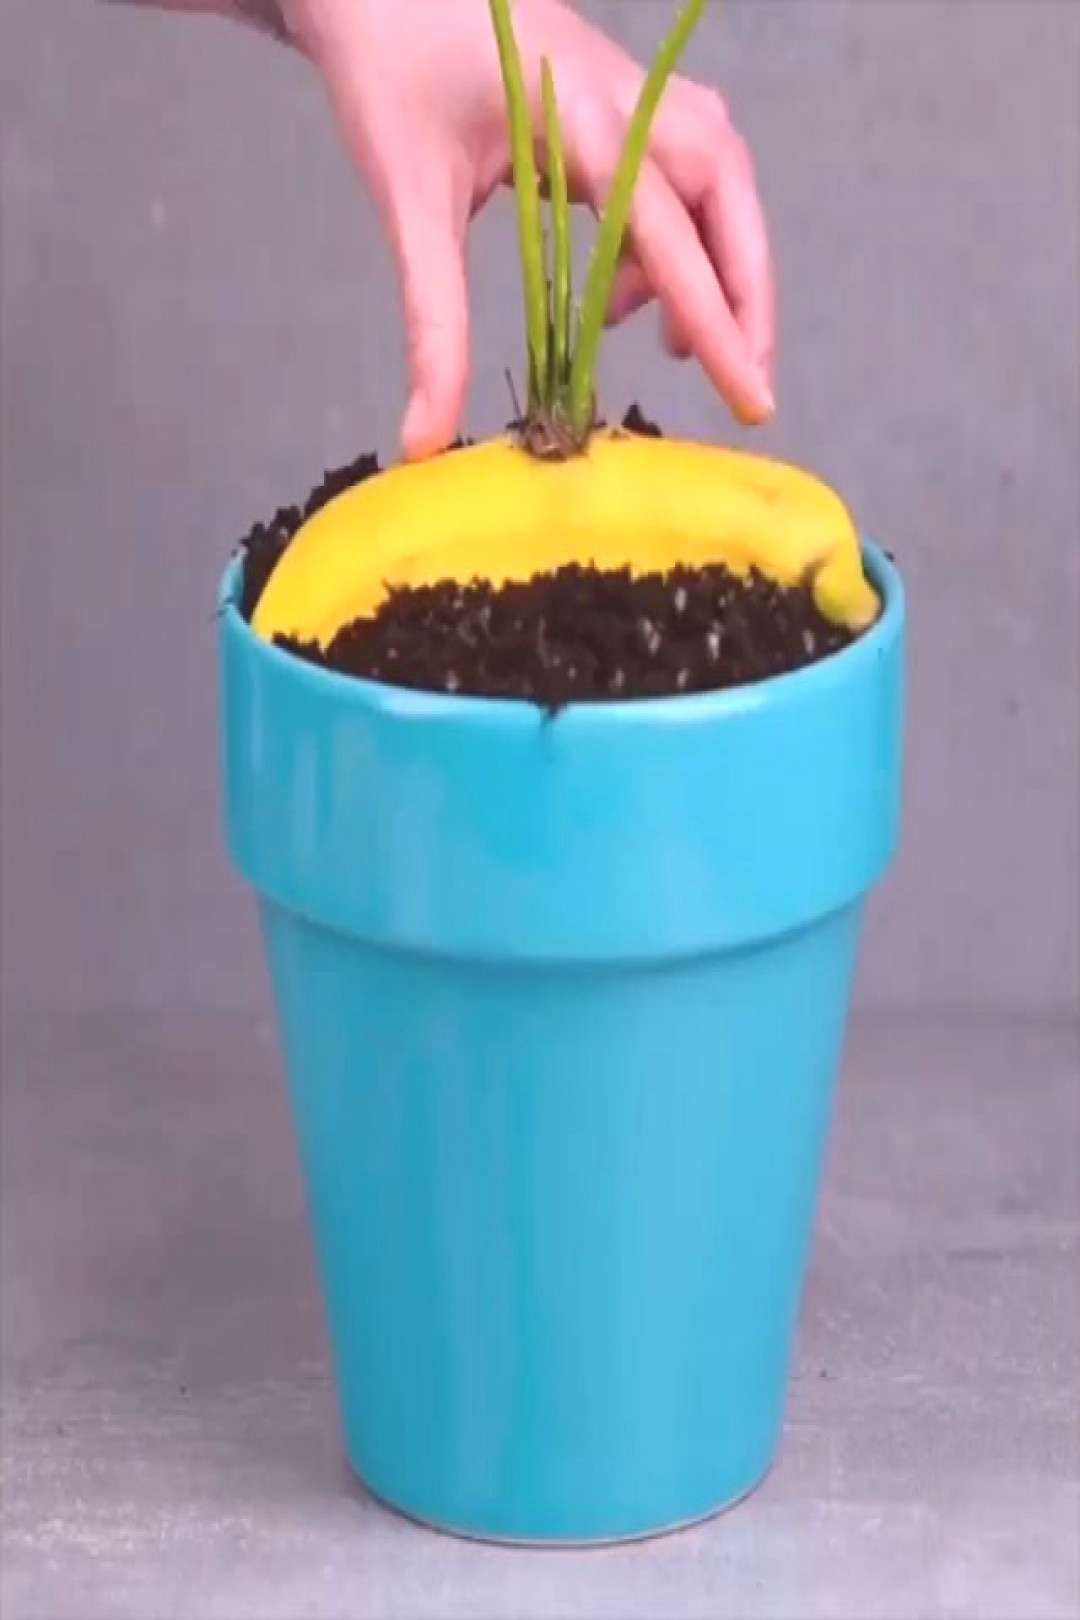 #diyvideos #tutorial #follow #plant #hacks #diy #by #t Plant hacks Follow Follow Follow By: #diy #diyvideos #tutorial #tYou can find Diy makeup and more on our website.Plant hacks Follow Follow Follow By: #diy #diyvideos #tutorial #t